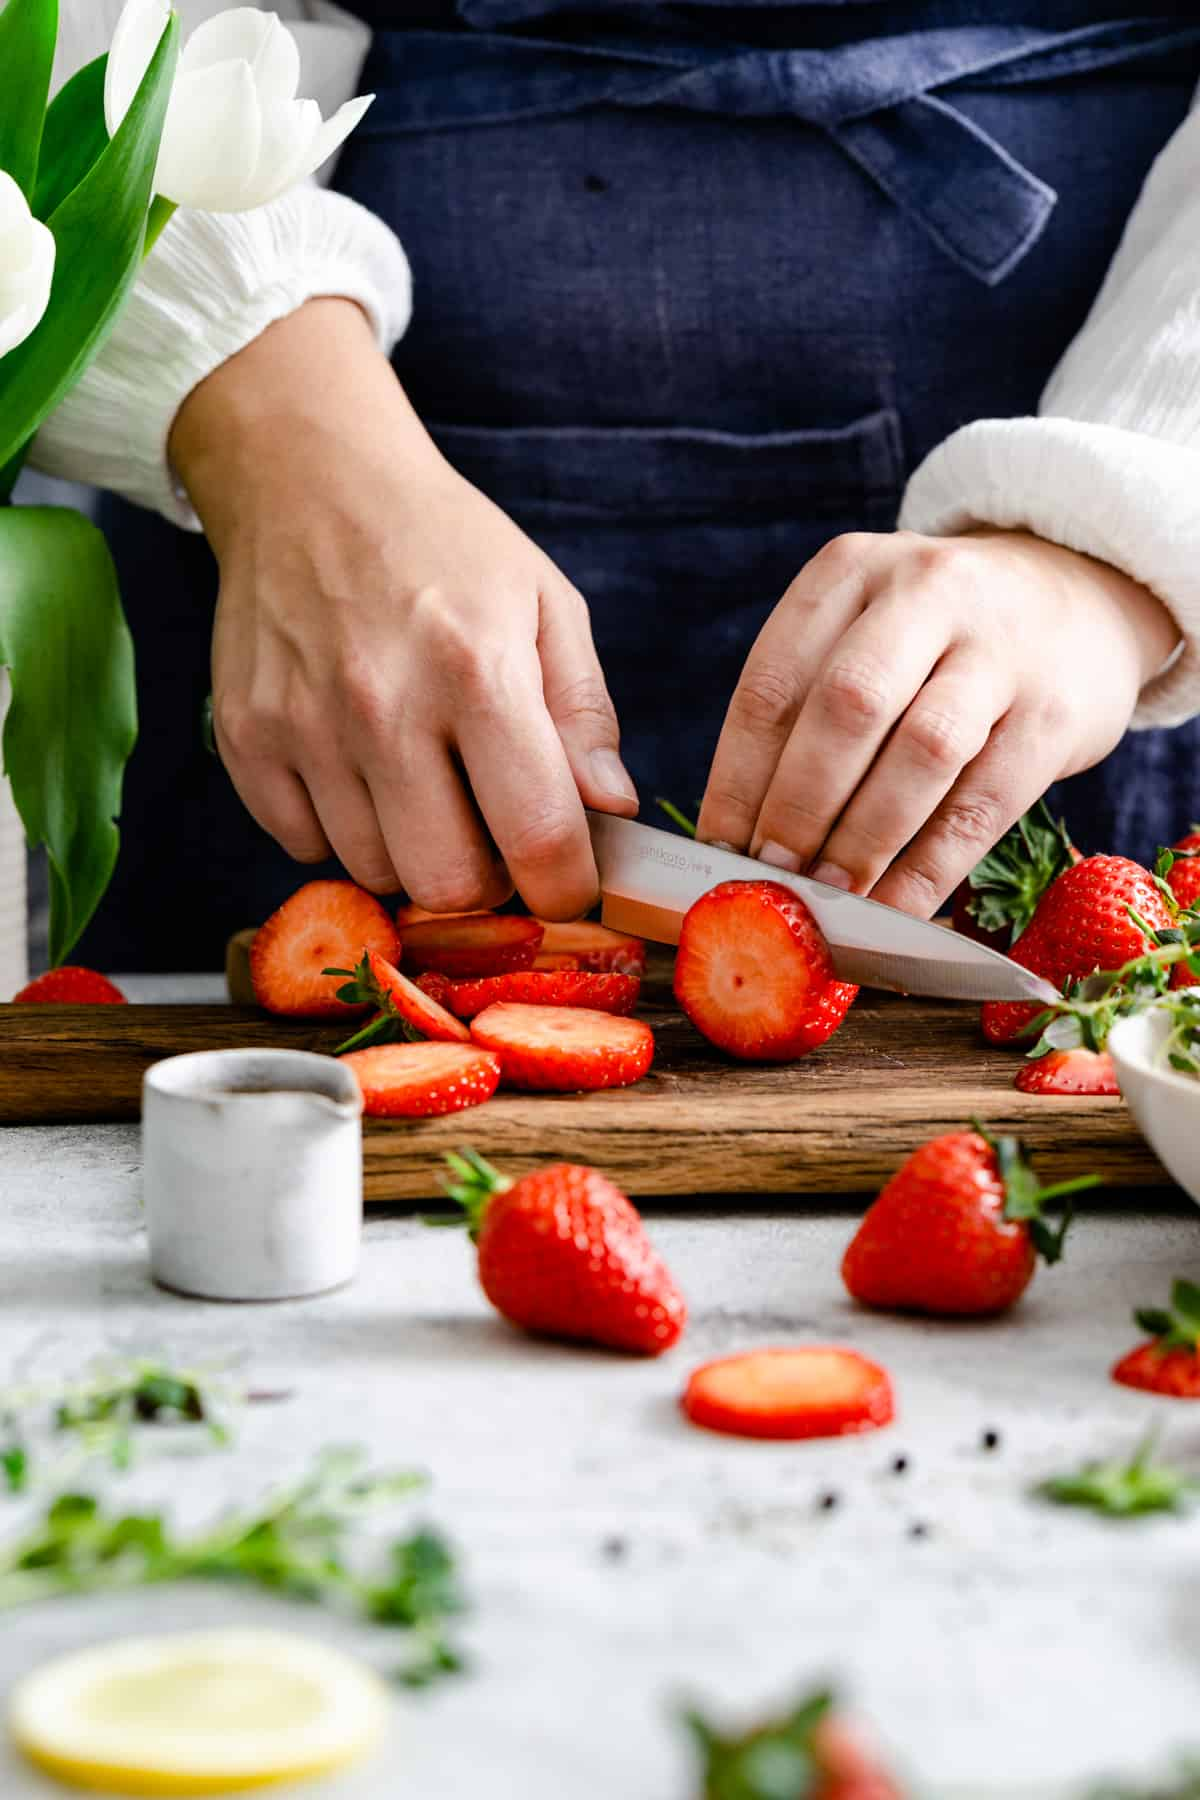 a close up of a person's hands slicing strawberries on a wooden chopping board